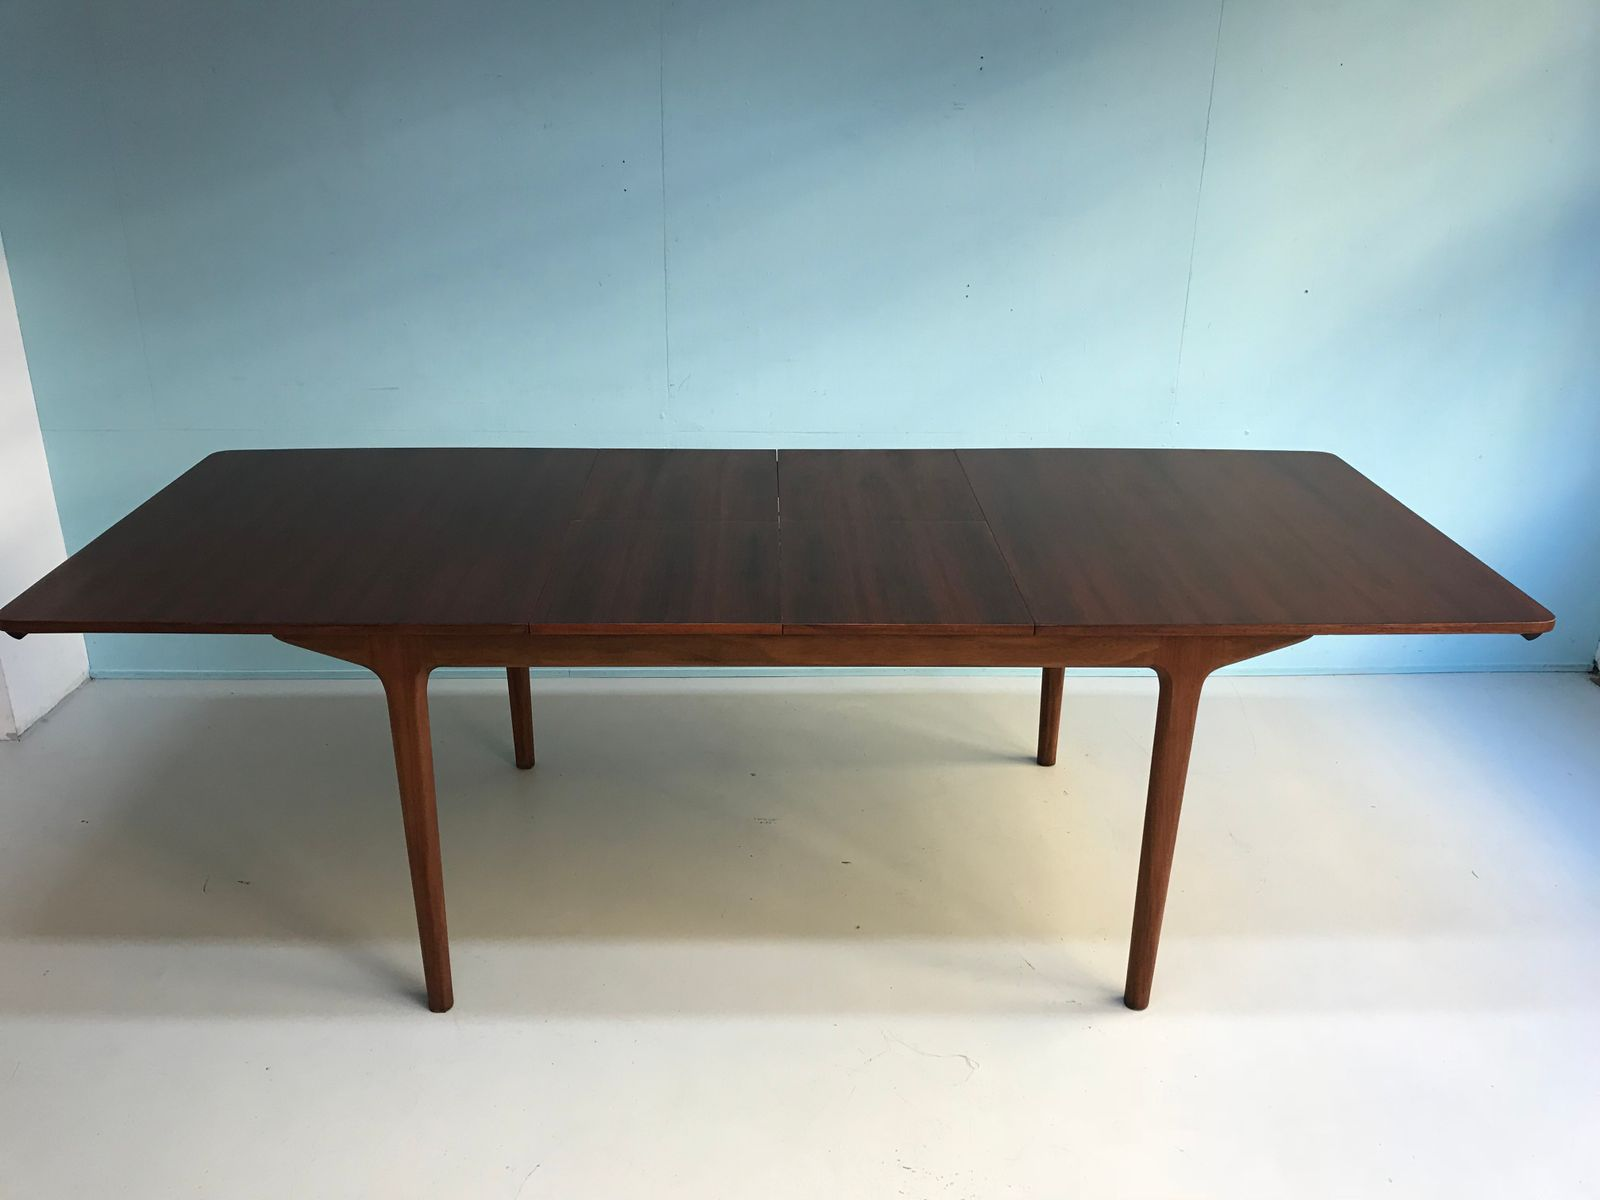 Mid Century Rosewood Dining Table from Mcintosh for sale  : mid century rosewood dining table from mcintosh 9 from www.pamono.co.uk size 1600 x 1200 jpeg 62kB